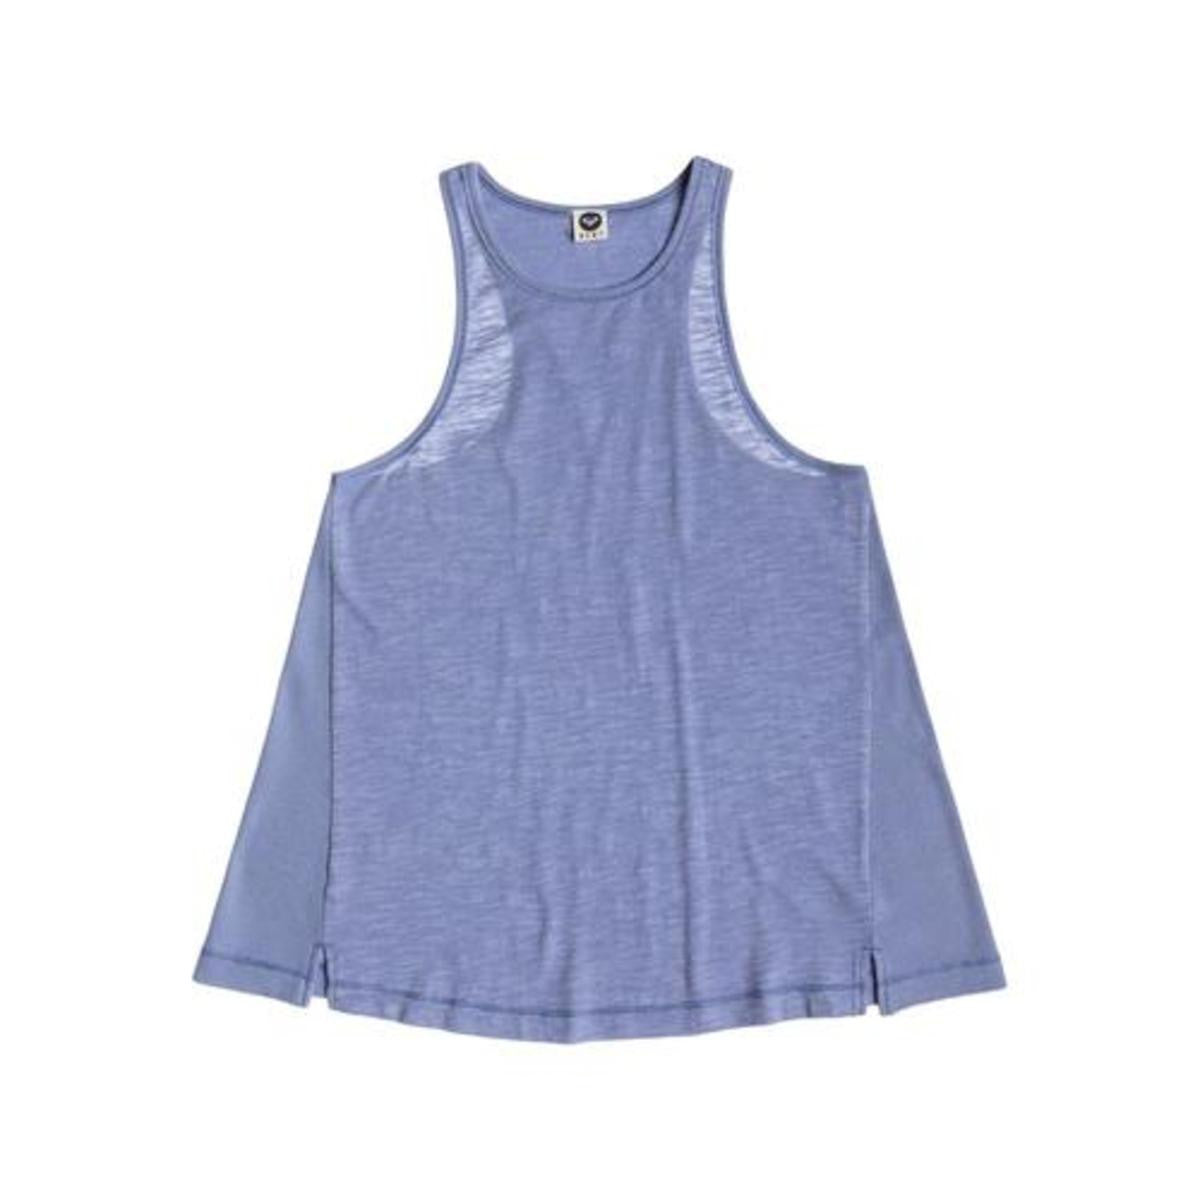 Roxy Rockaway Tank Top Light Denim New Womens